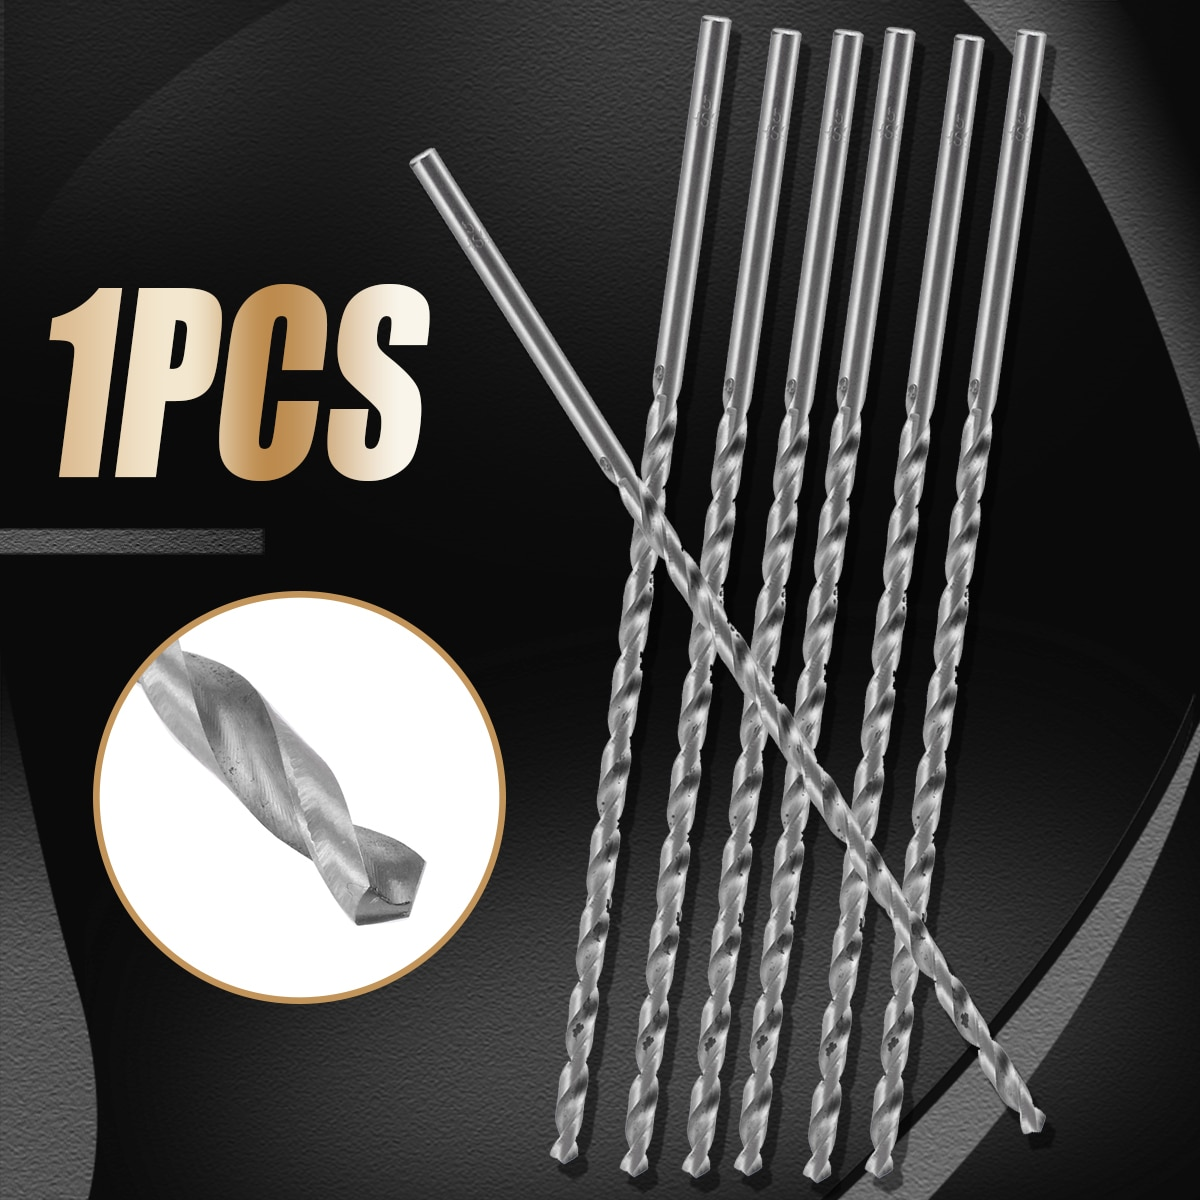 10pcs micro 1 5mm drill bit hss straight shank electrical tool twist drilling bit suitable for wood aluminium plastic drilling 1pcs 4-10mm HSS Twist Drill Bit Set Extra Long 200mm Straight Shank Drill Bit for Metal Plastic Drilling Wood Power Tool